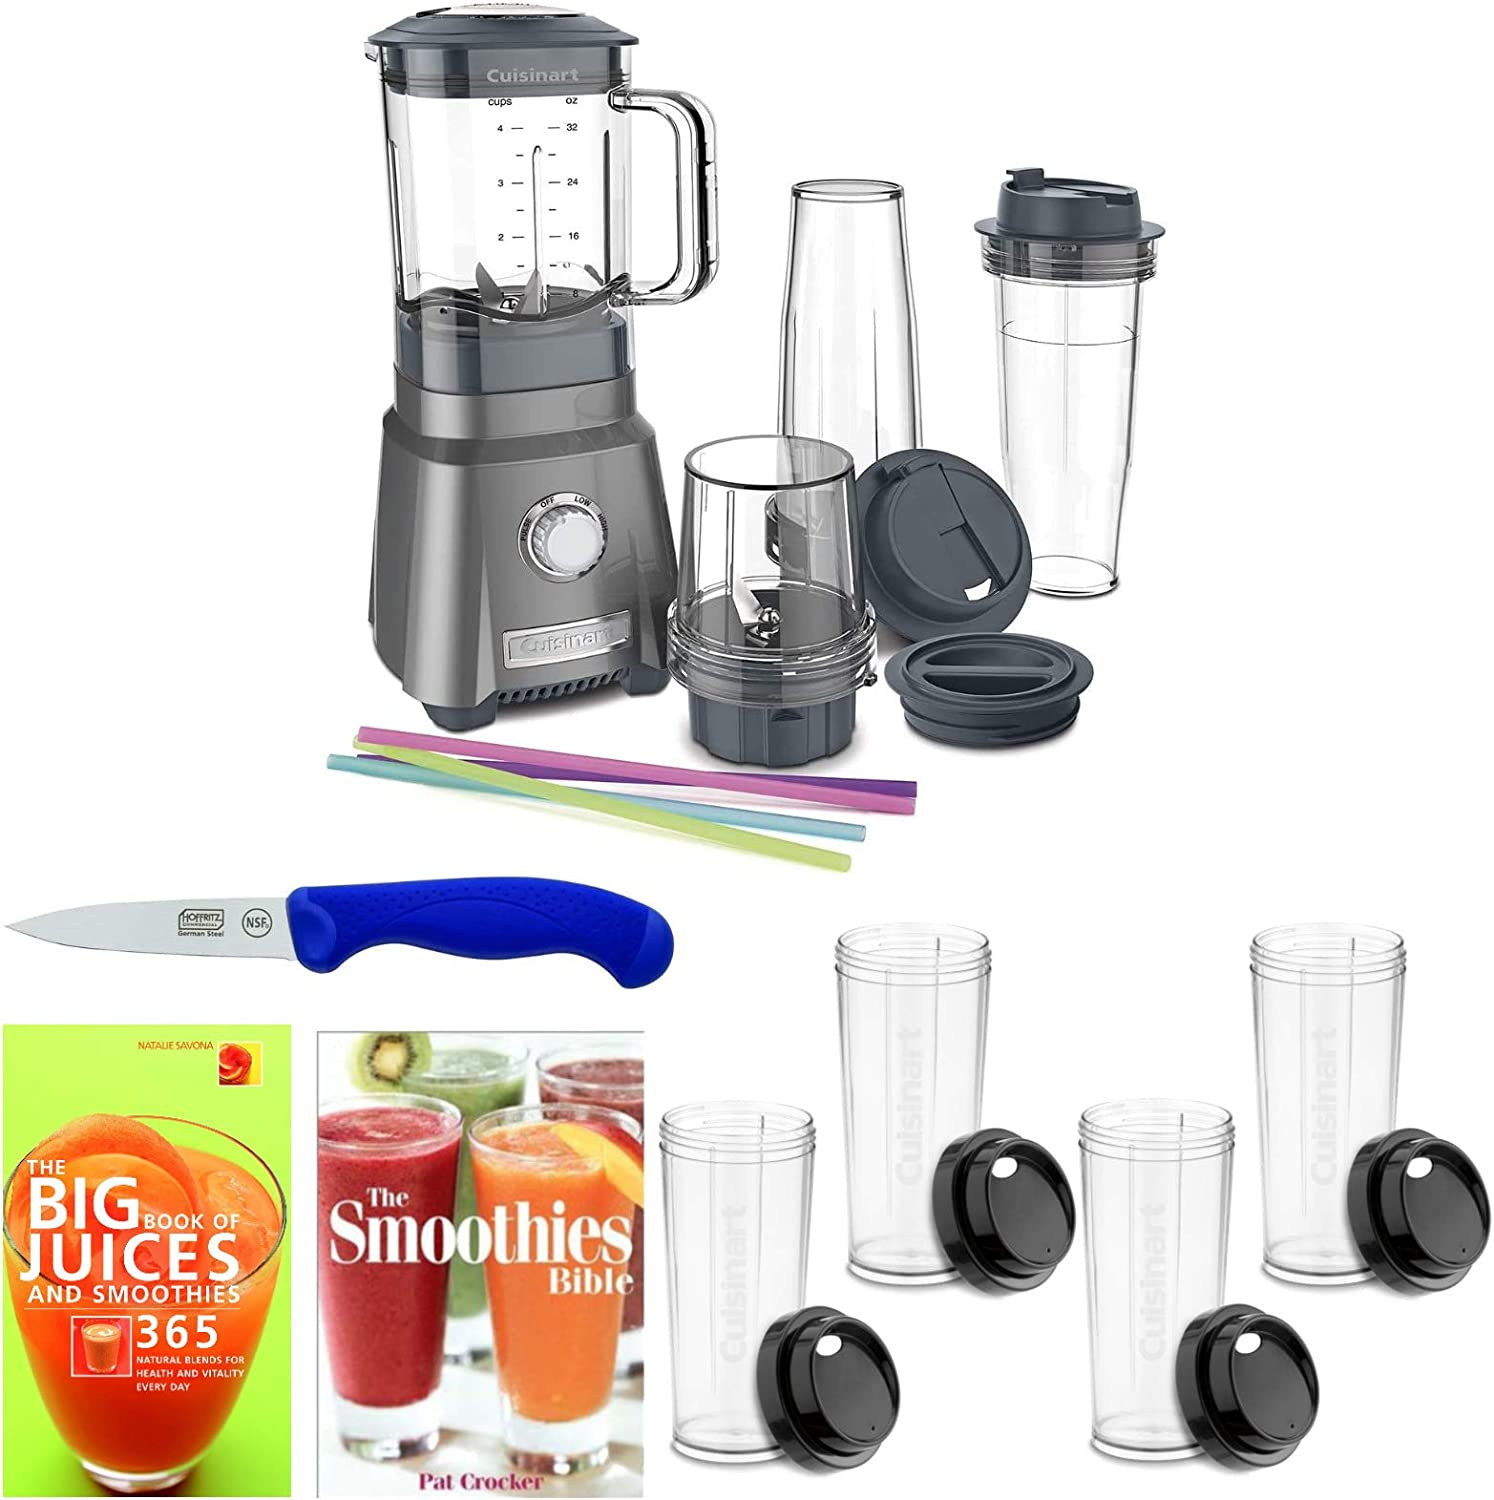 Cuisinart CPB-380 Power Compact Blender with 4 Extra Cups, 2 Recipe Books, and 3.5-Inch Paring Knife Bundle (5 Items)